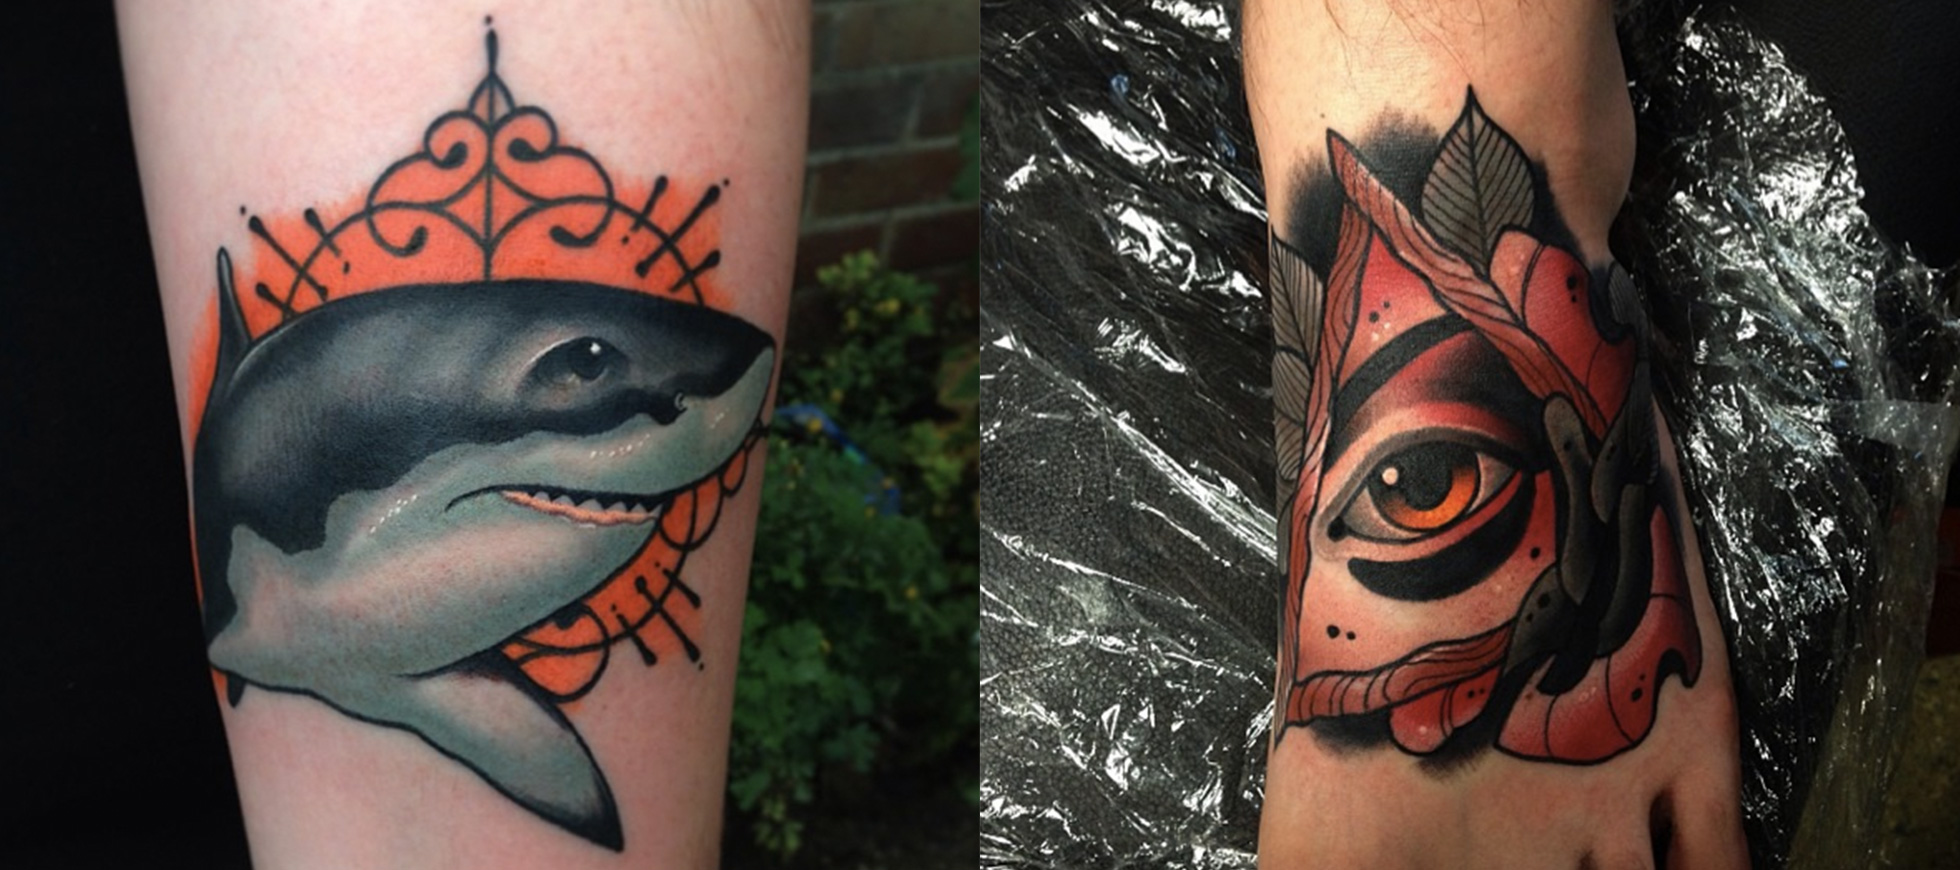 Tattoos By Mike Stockings